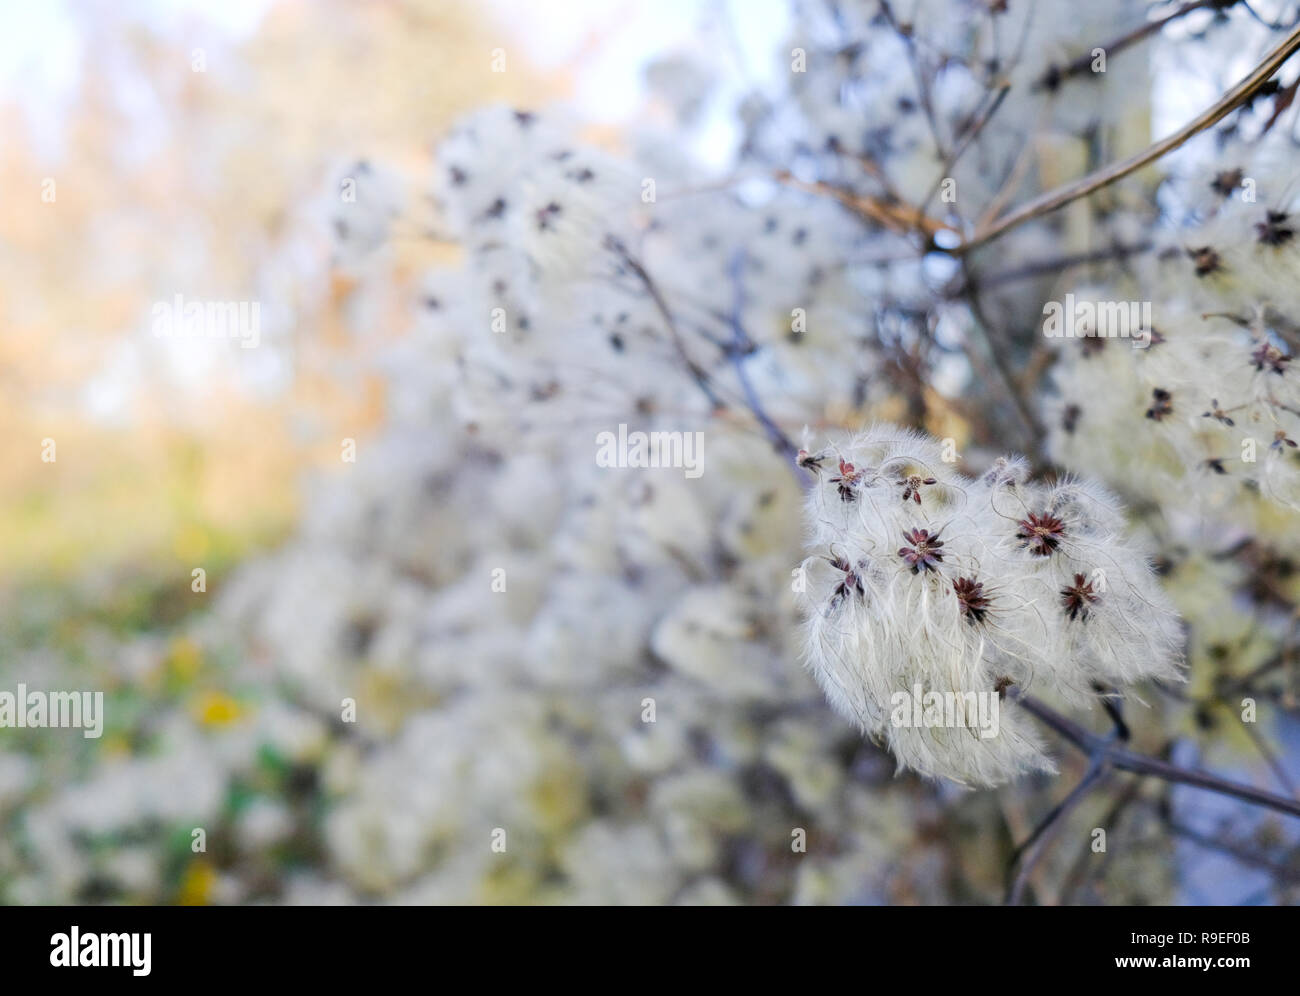 Old Mans Beard (Clematis vitalba) or wild Clematis growing in the Kent countryside - Stock Image